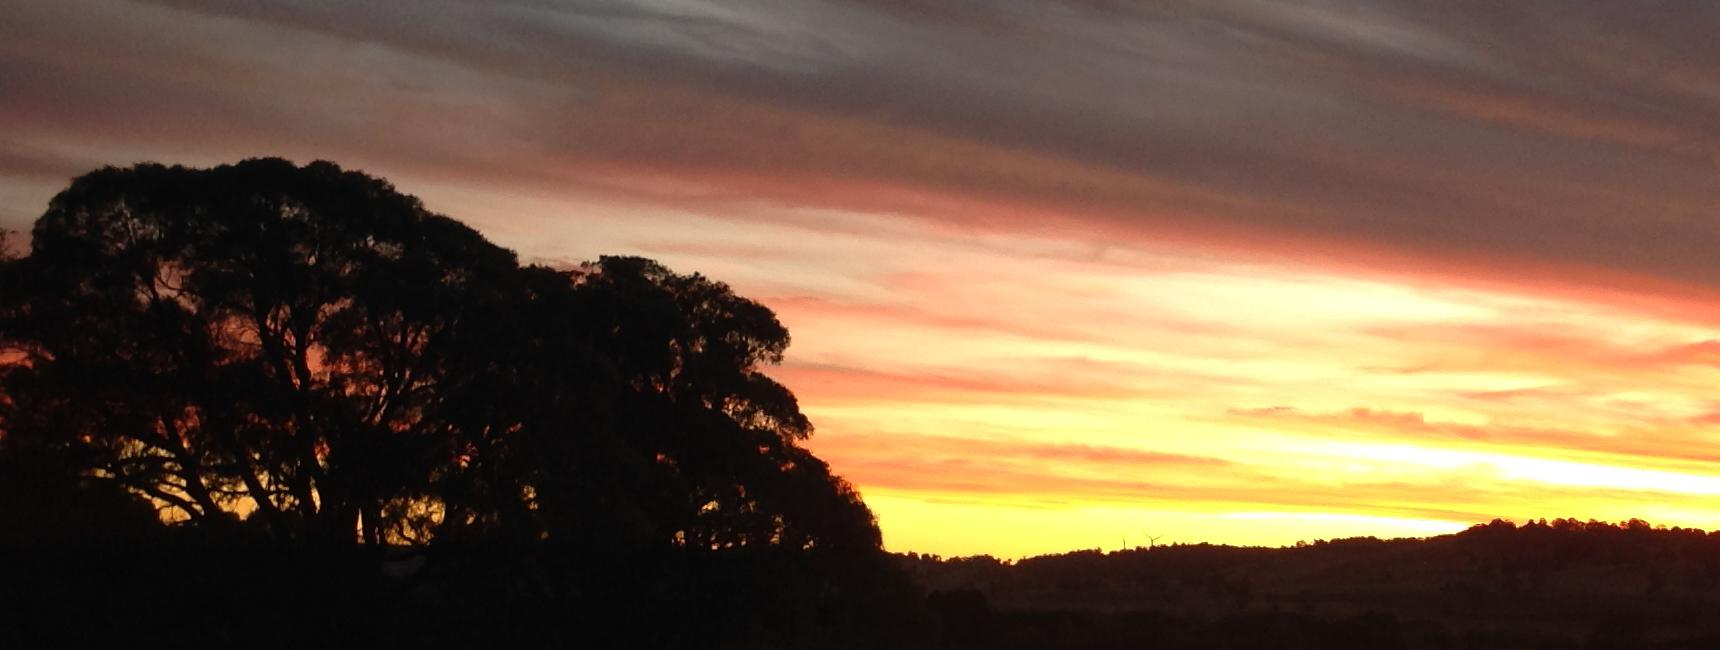 Sunset in Upper Lachlan